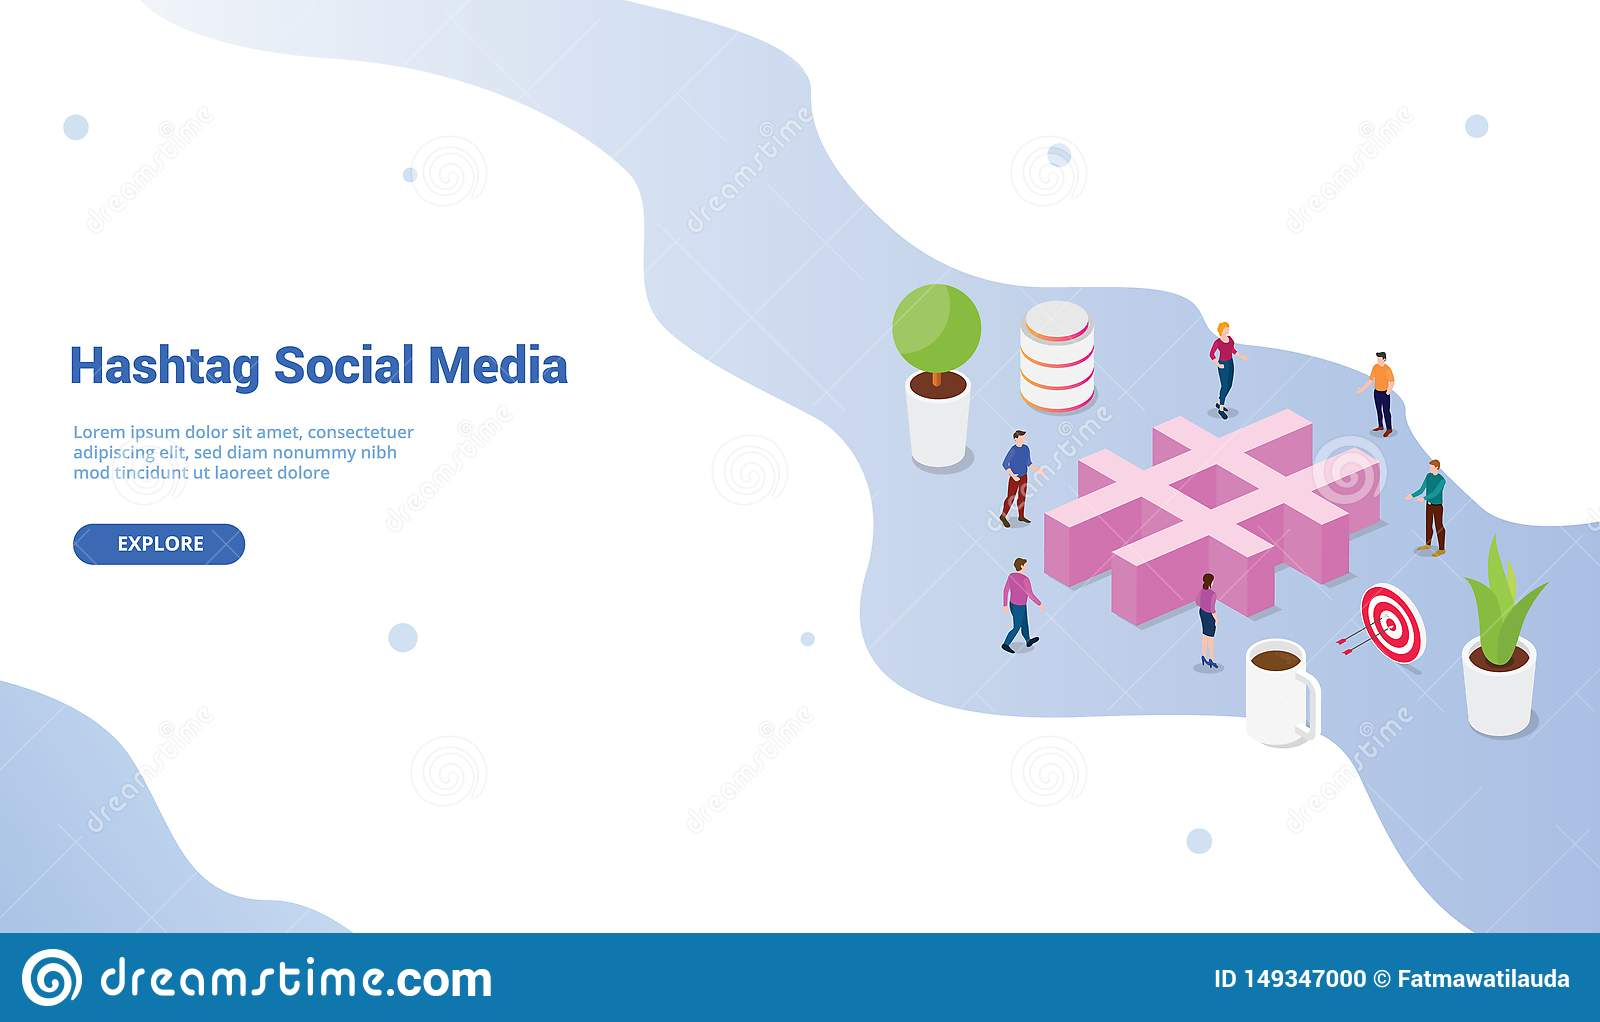 Social media hashtag concept with crowd people and business icon for website template or landing homepage design - vector